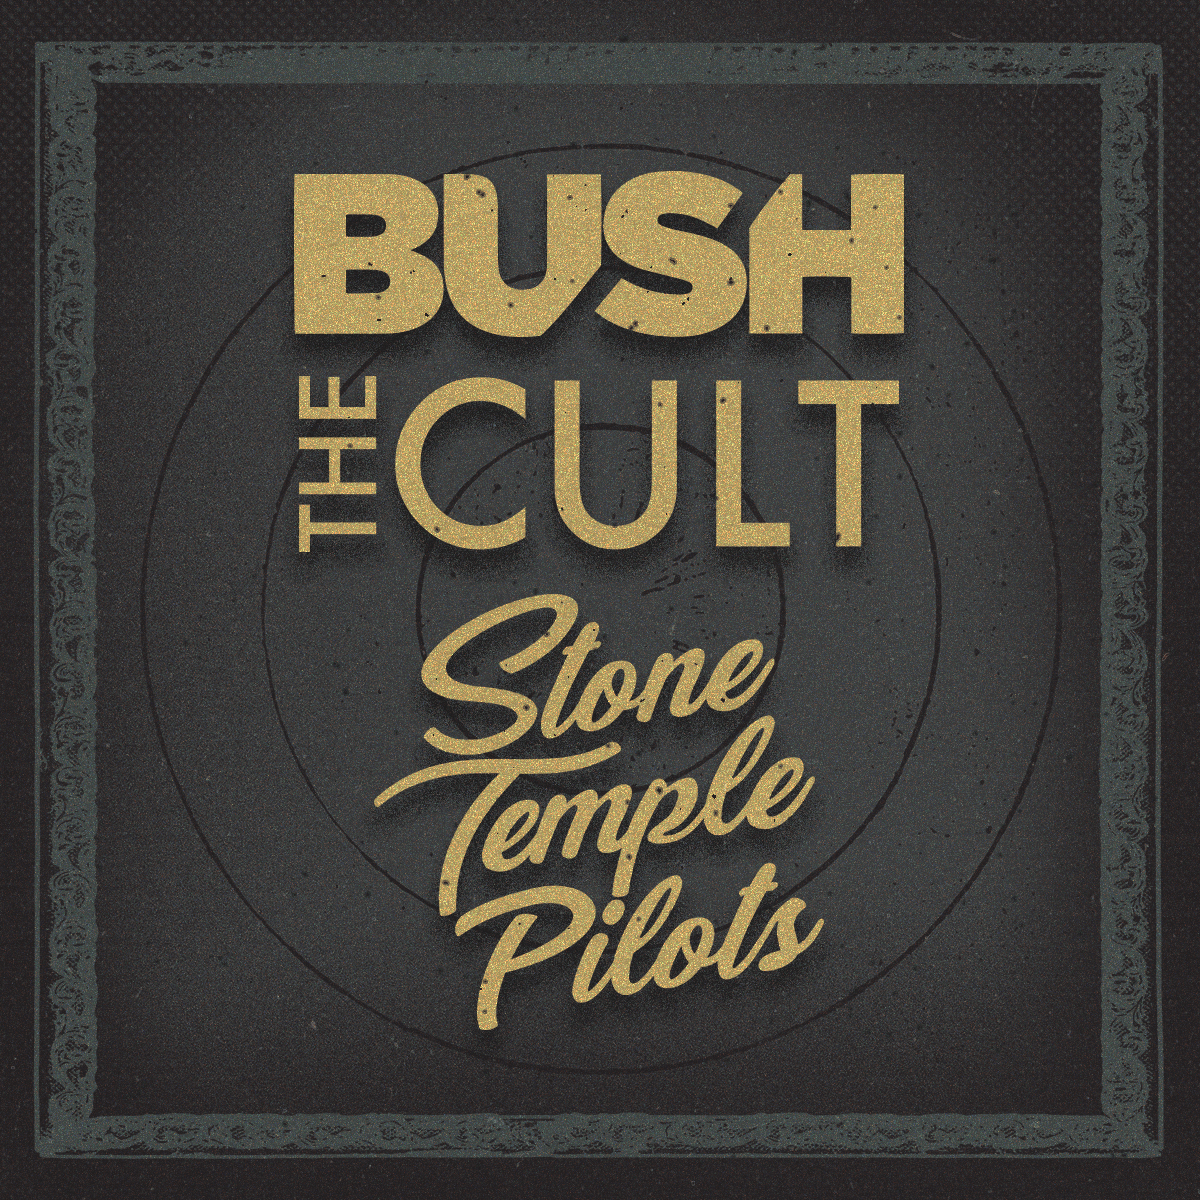 Regata Stone Temple Pilots Bush Revolución Tour 2019 – Name